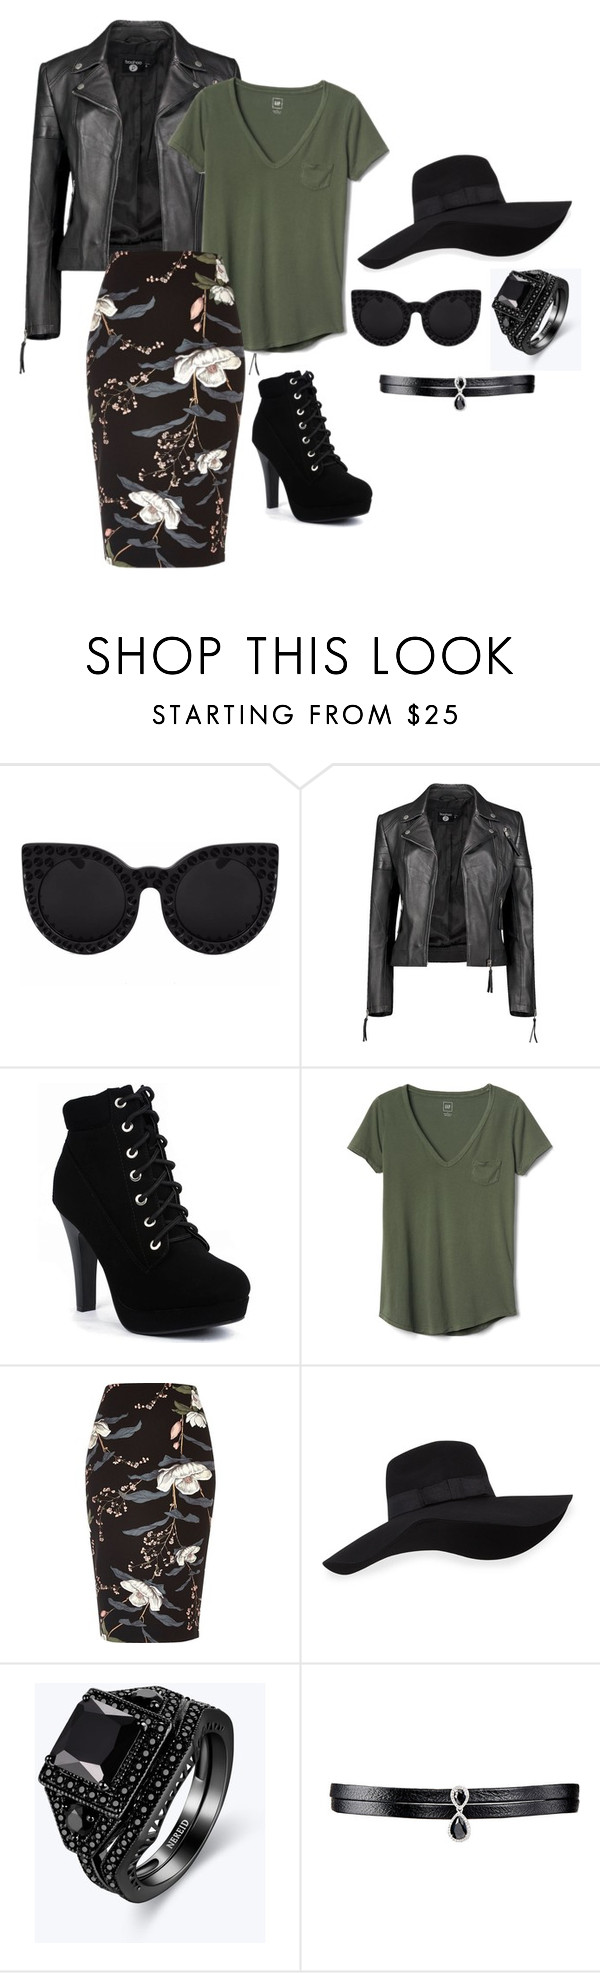 """""""3"""" by thaianemarrocos ❤ liked on Polyvore featuring Delalle, Boohoo, Gap, River Island, San Diego Hat Co. and Fallon"""